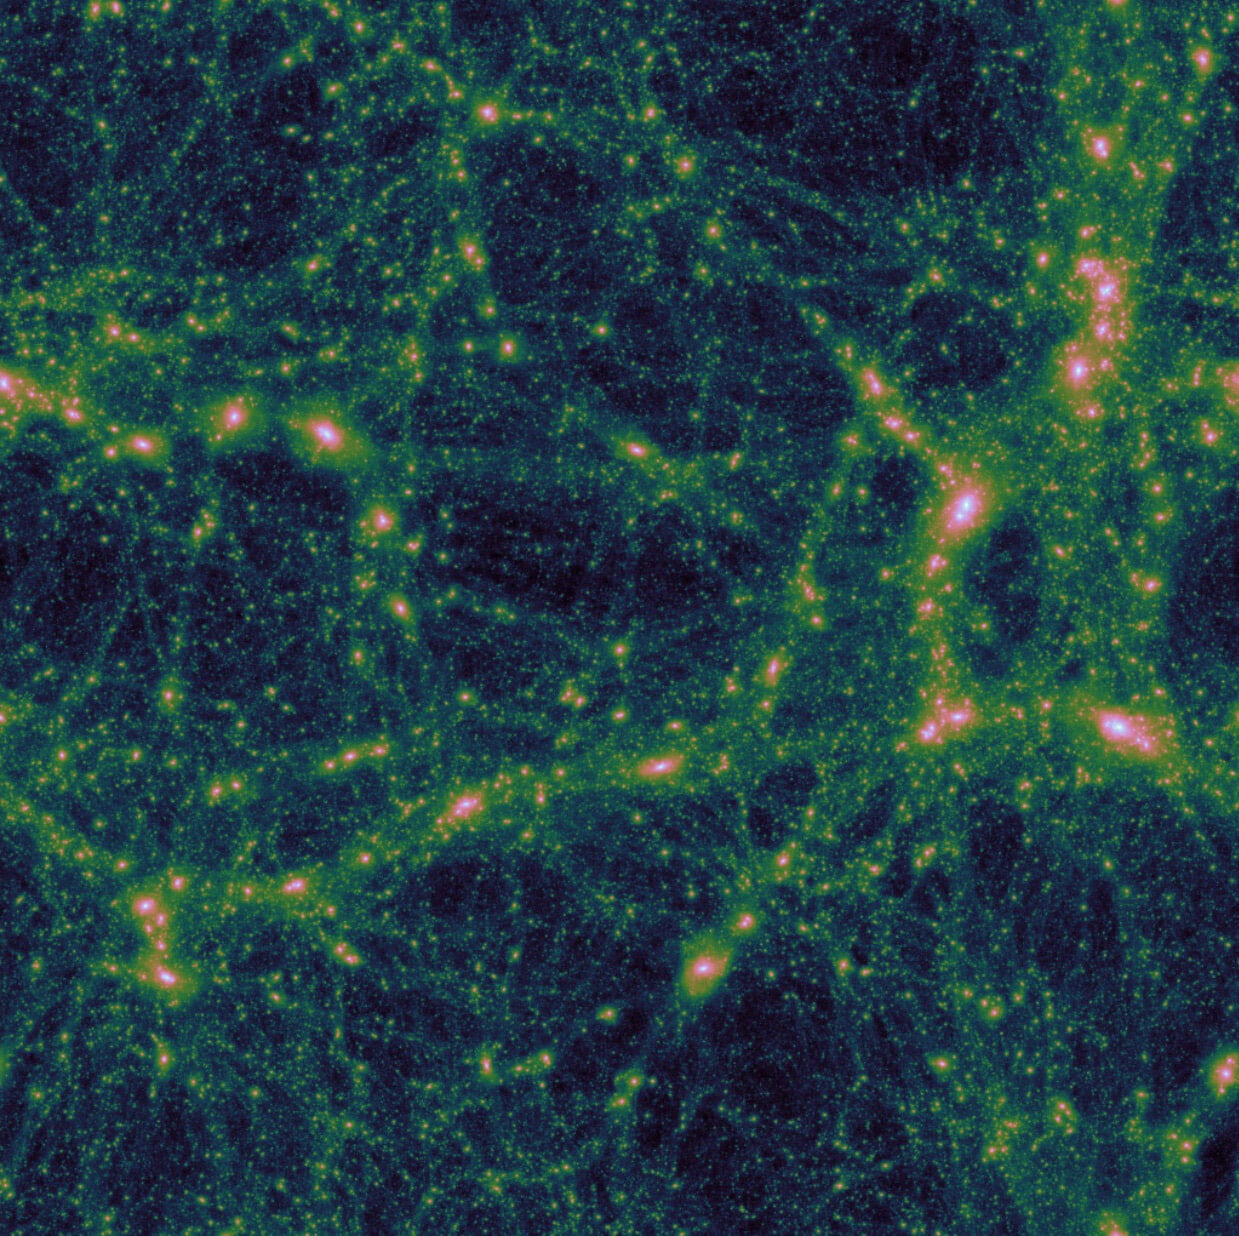 Evidence for more dark-matter-deficient dwarf galaxies found